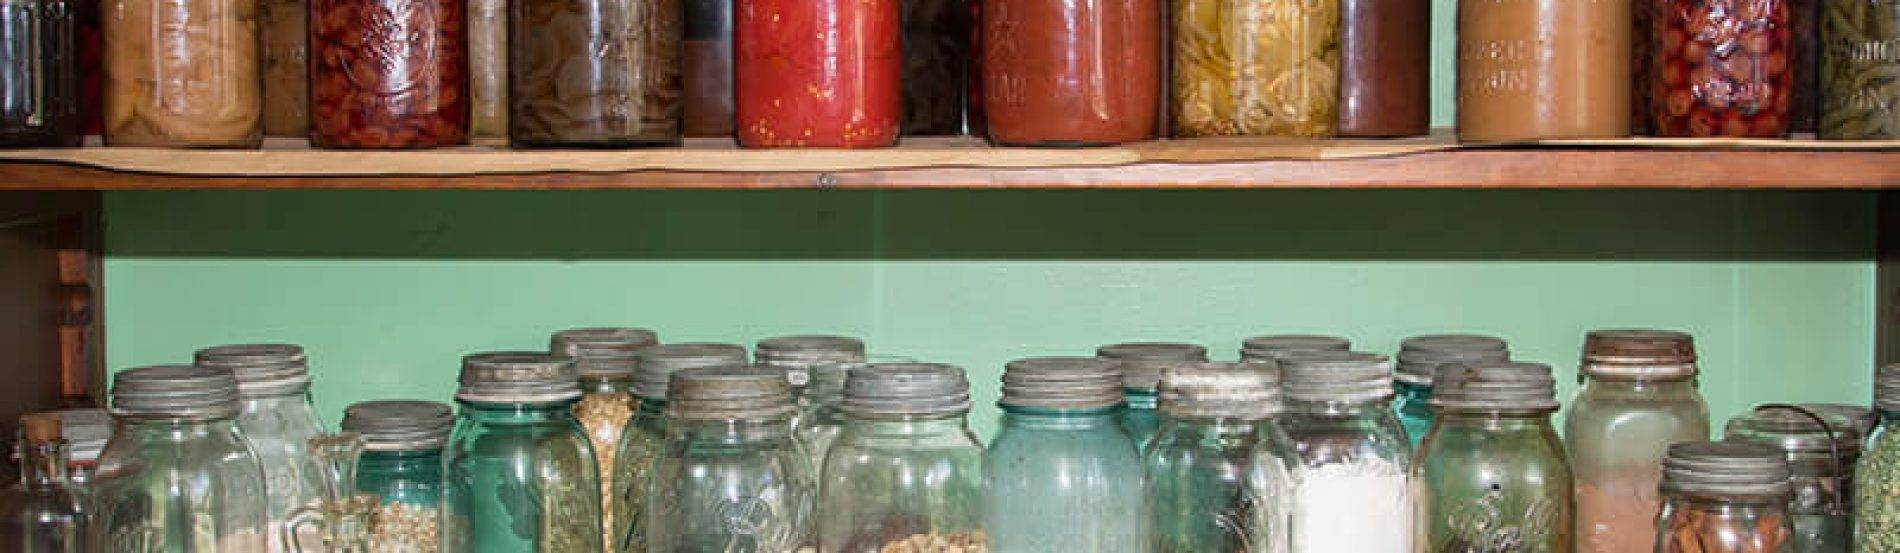 pantry stocked with glass jars of food and ingredients